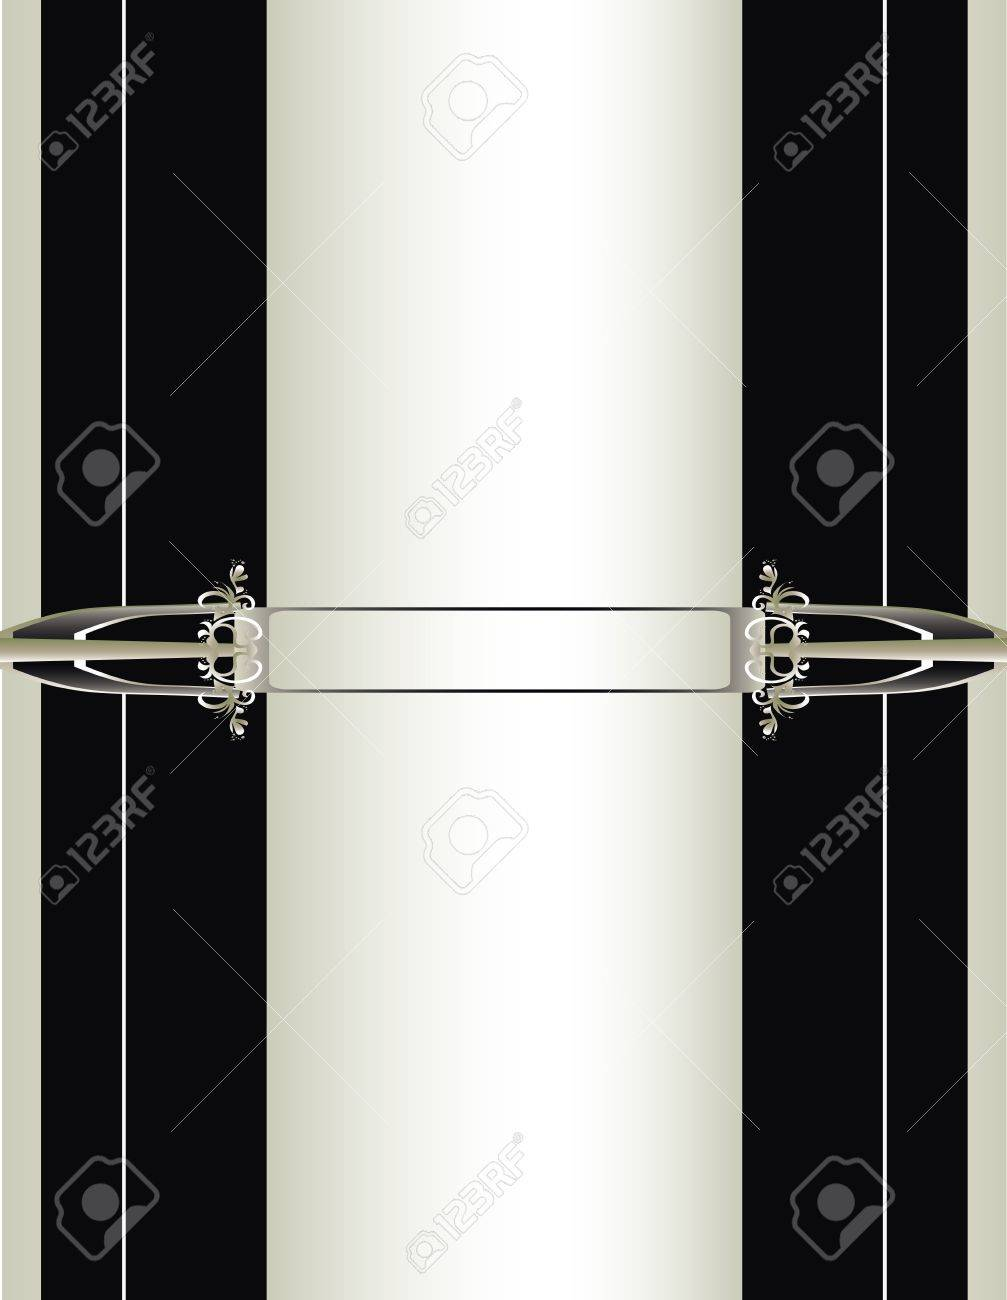 Off white, black, and silver background Stock Vector - 7315139